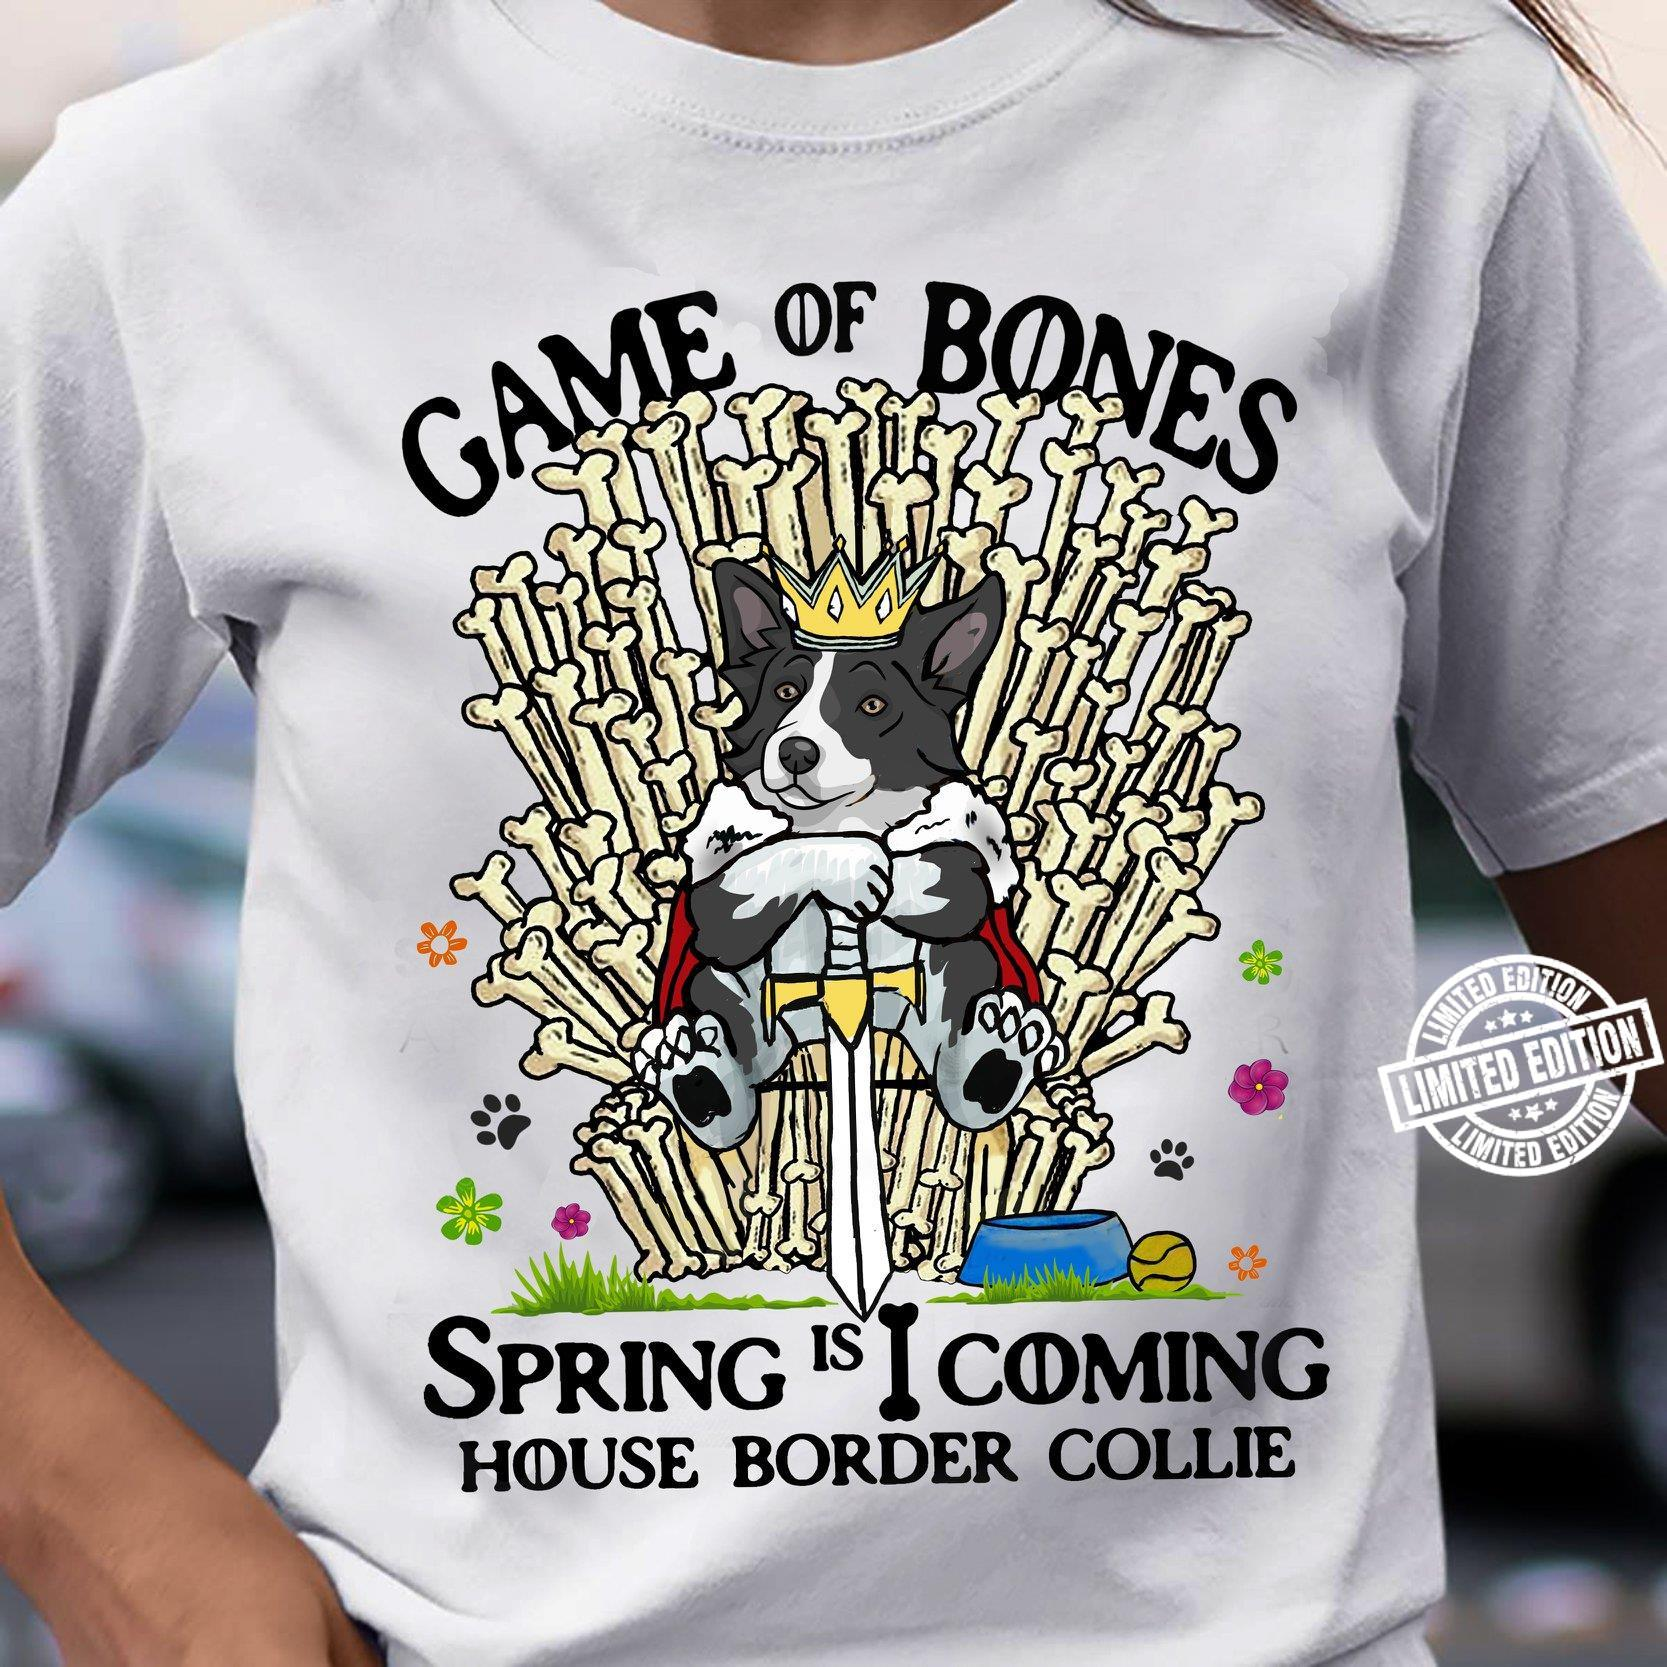 Game of bones spring is I coming house border collie shirt